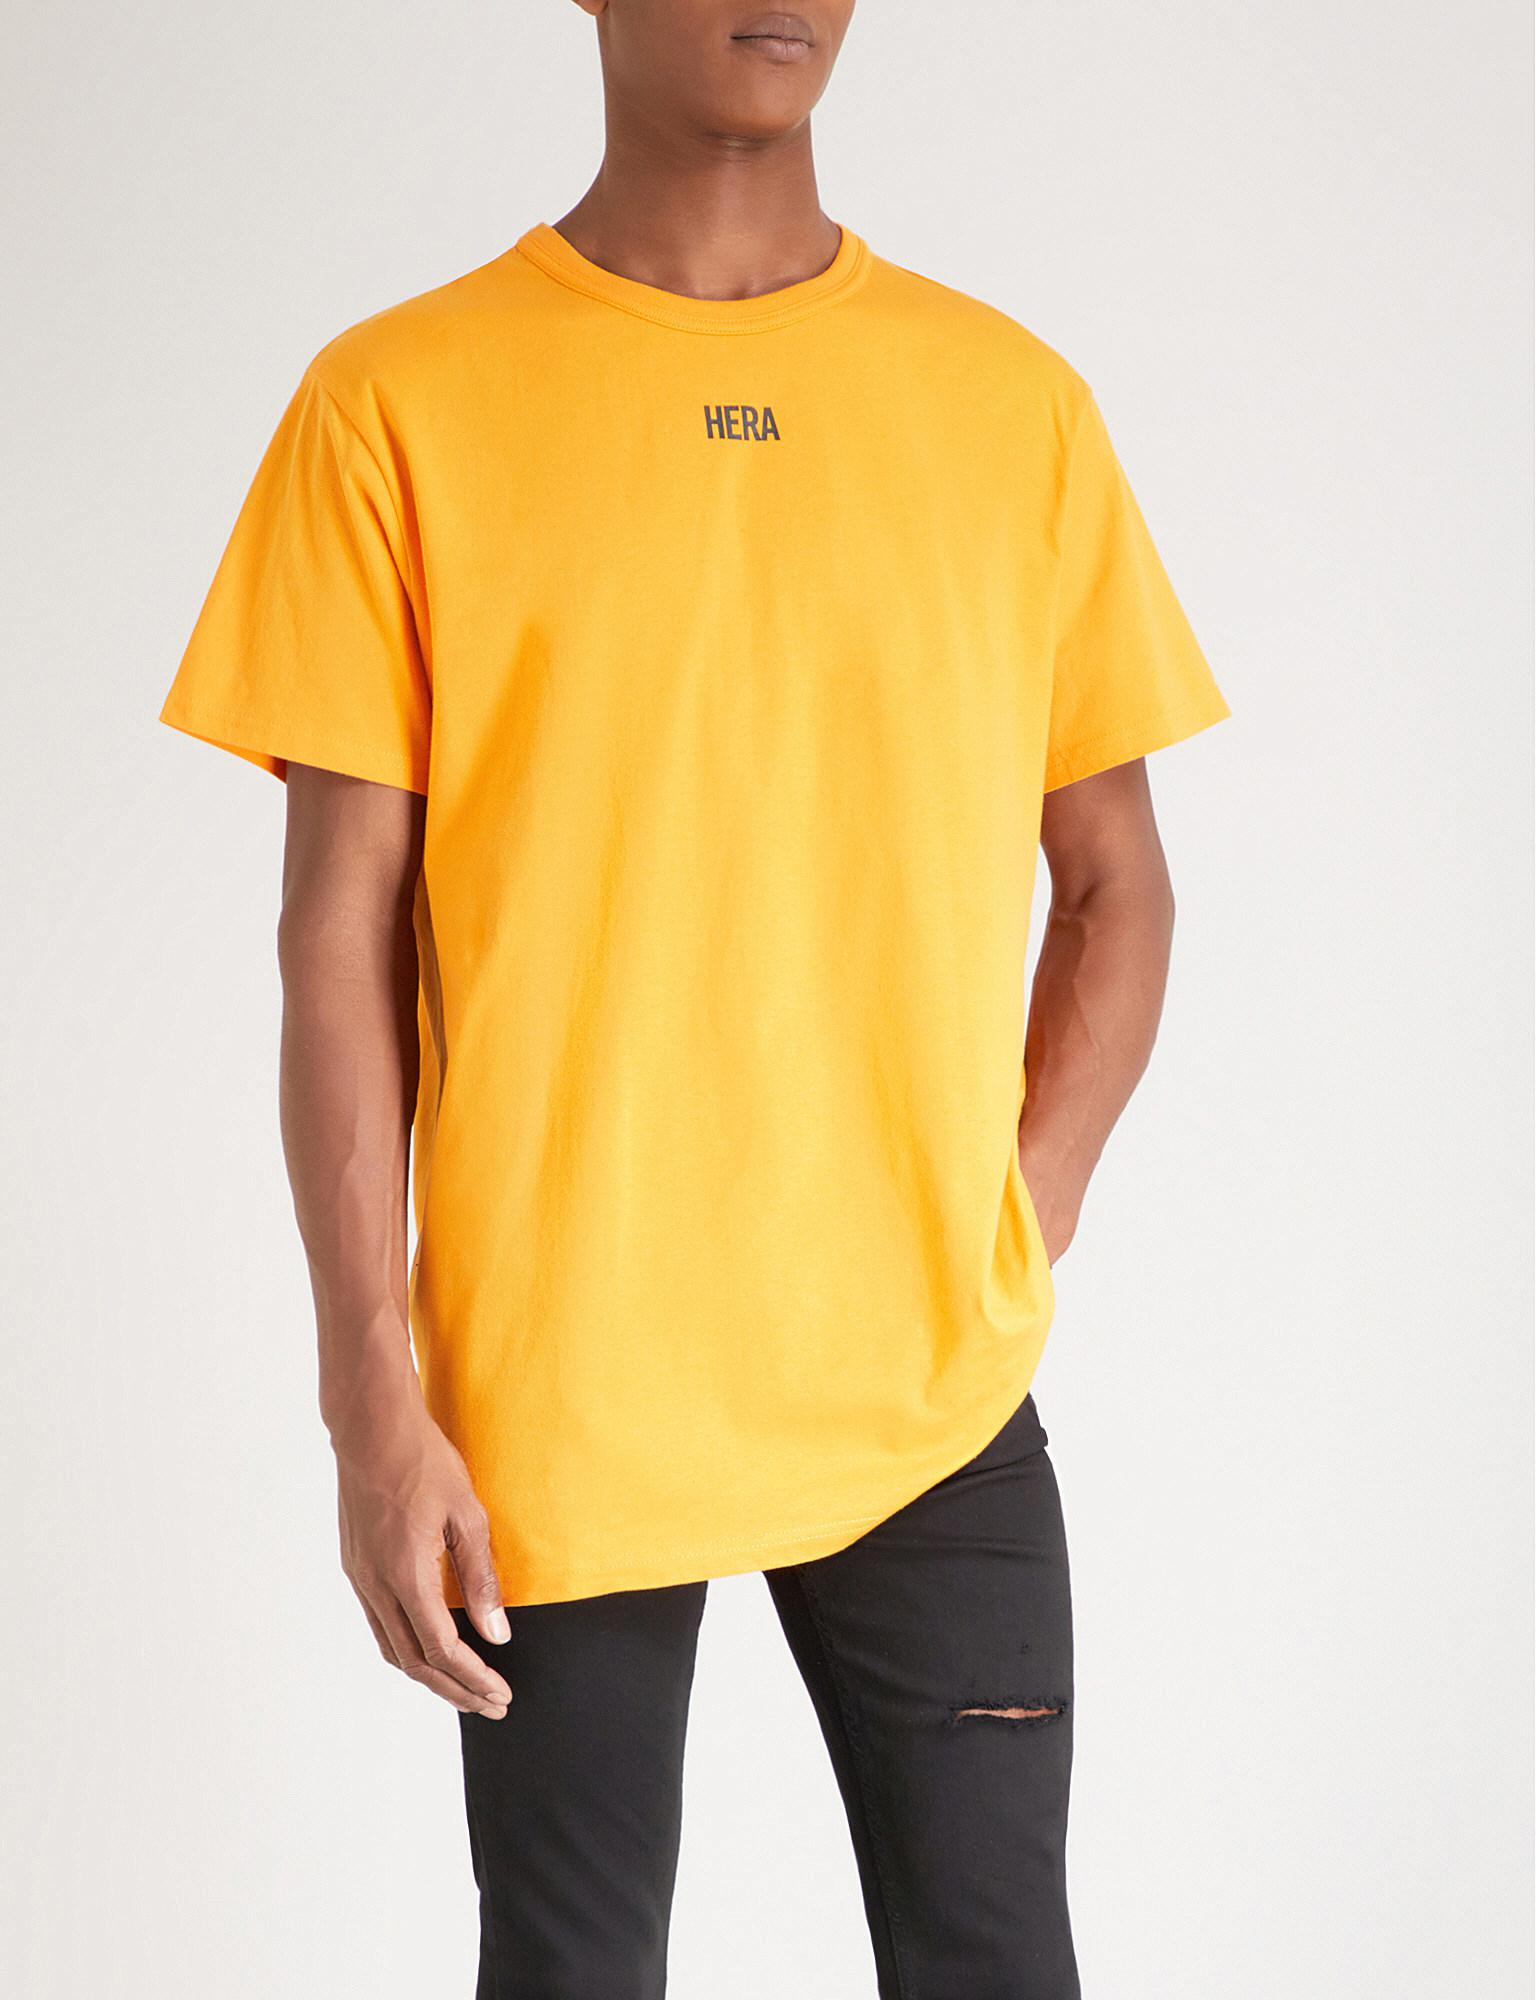 83e50328 HERA Printed Cotton-jersey T-shirt in Yellow for Men - Lyst